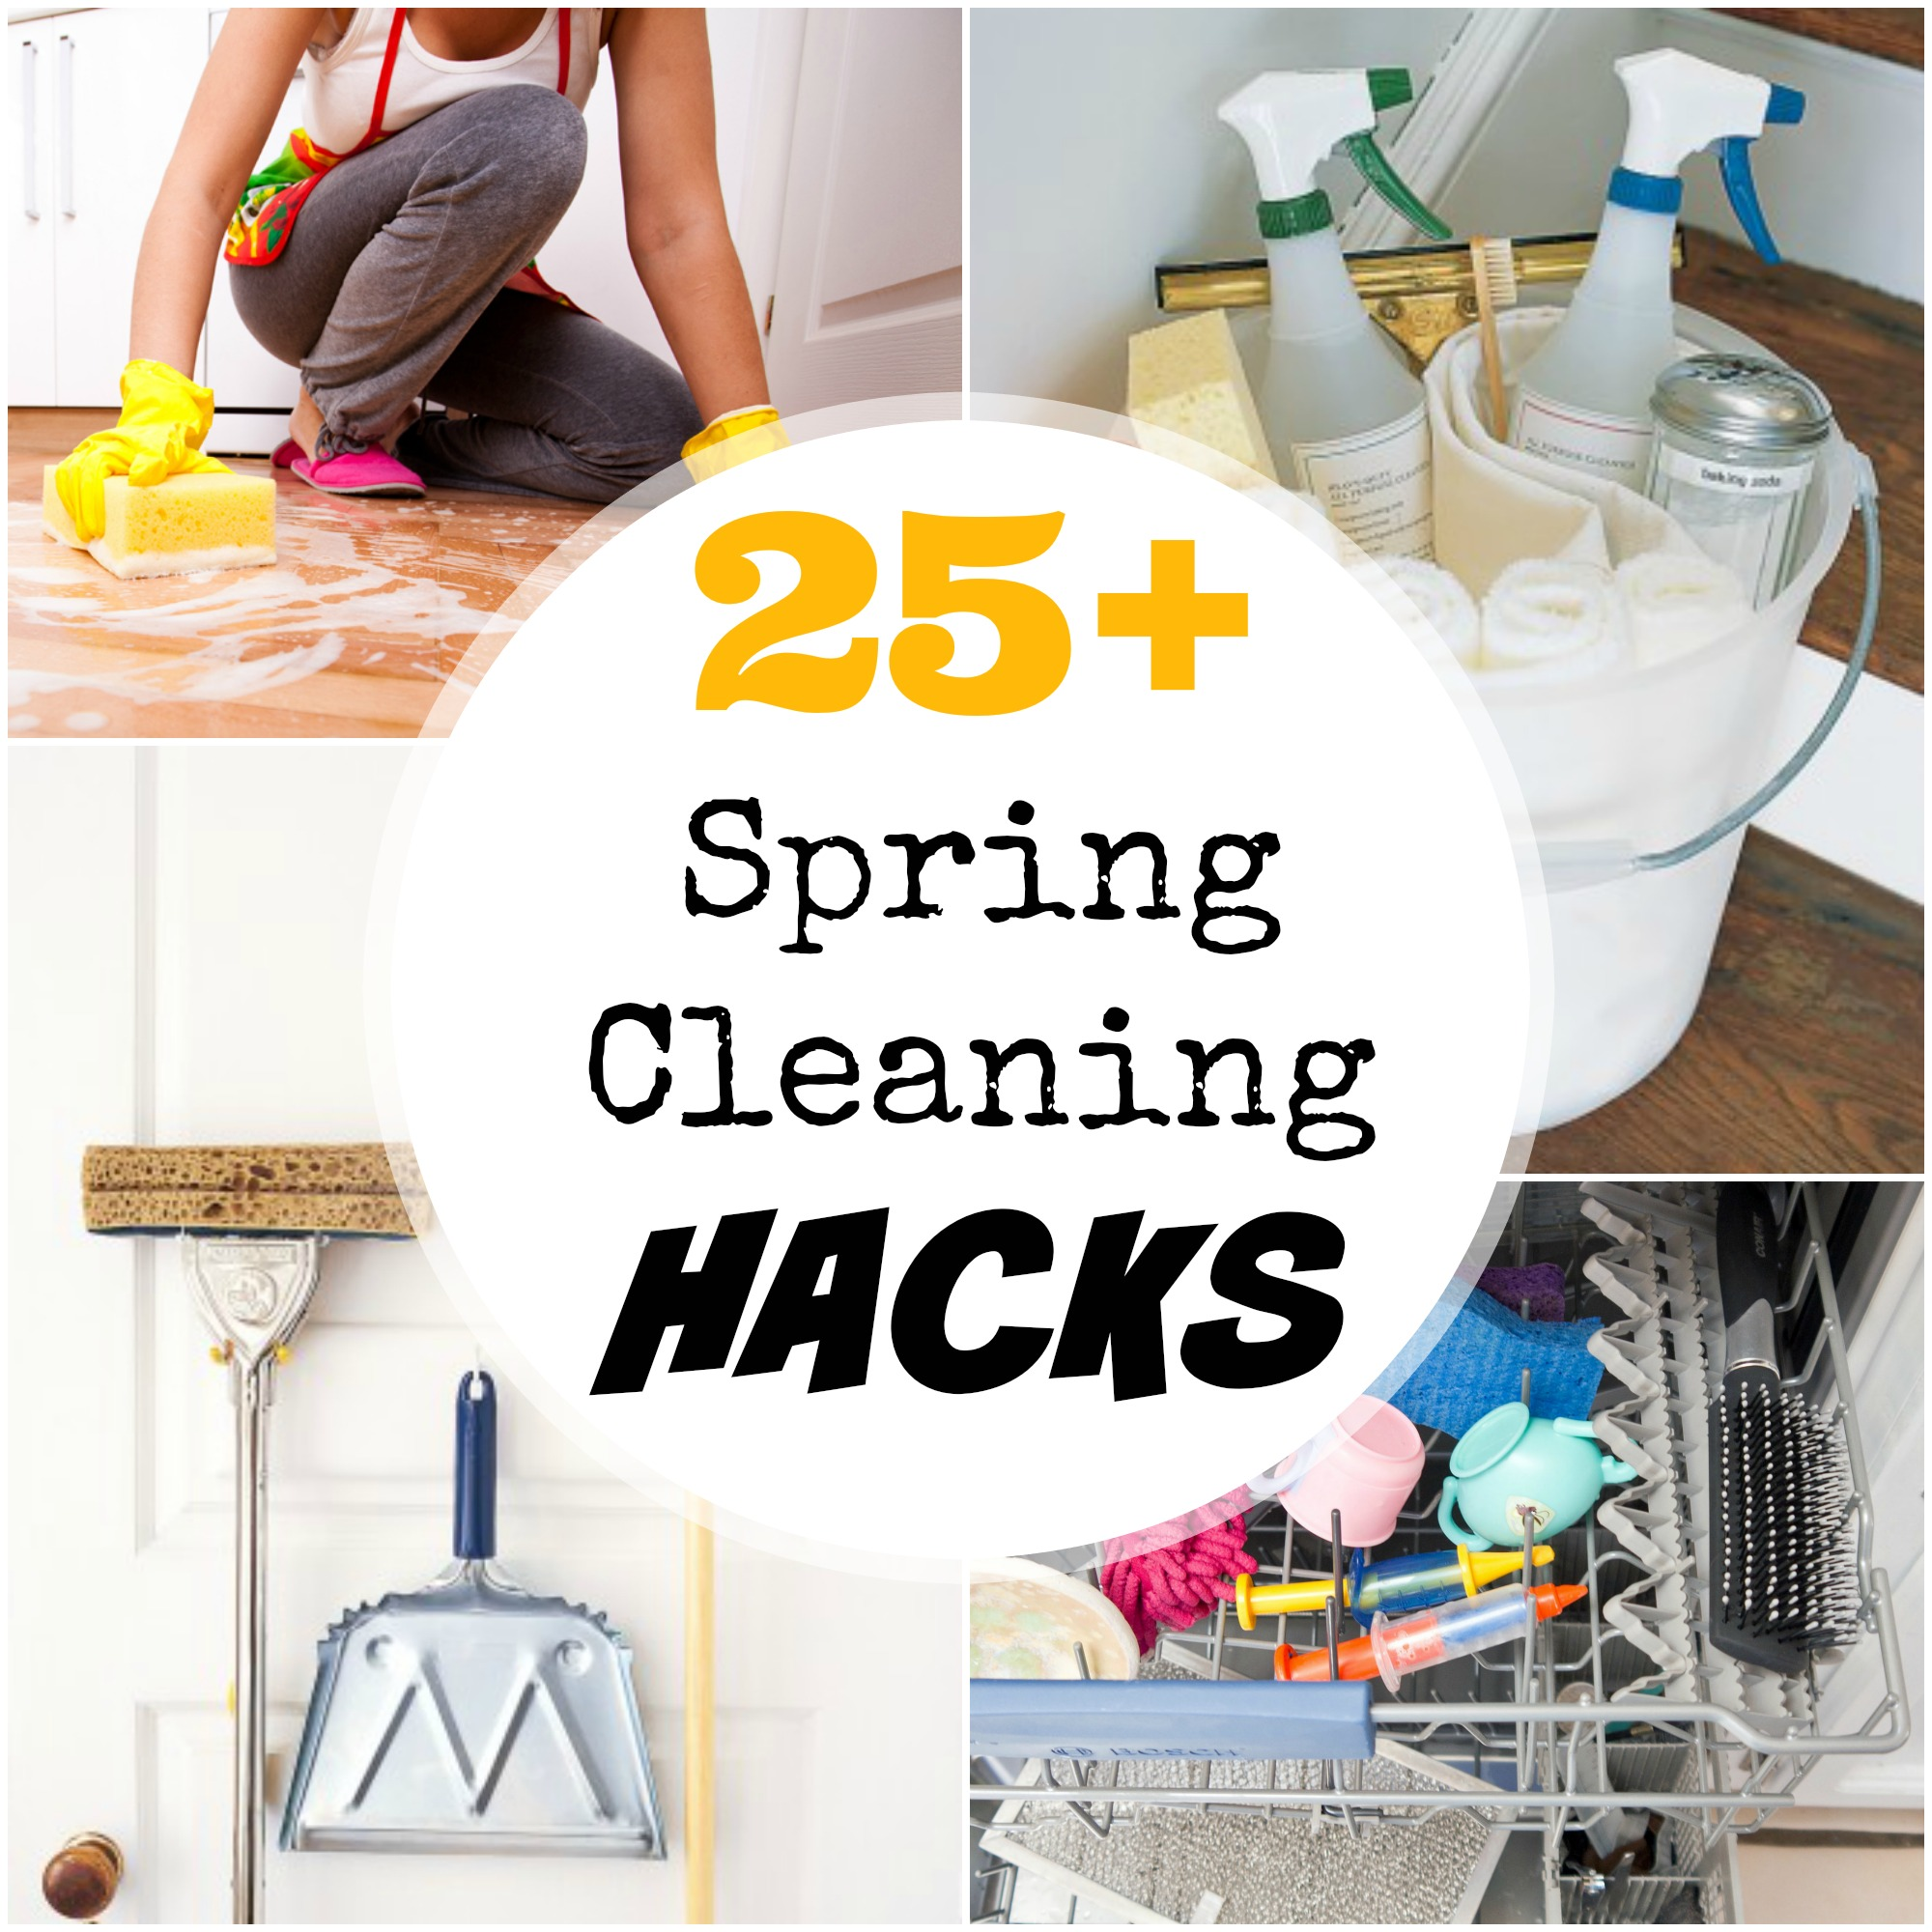 25 plus spring cleaning hacks for your home DIY how to